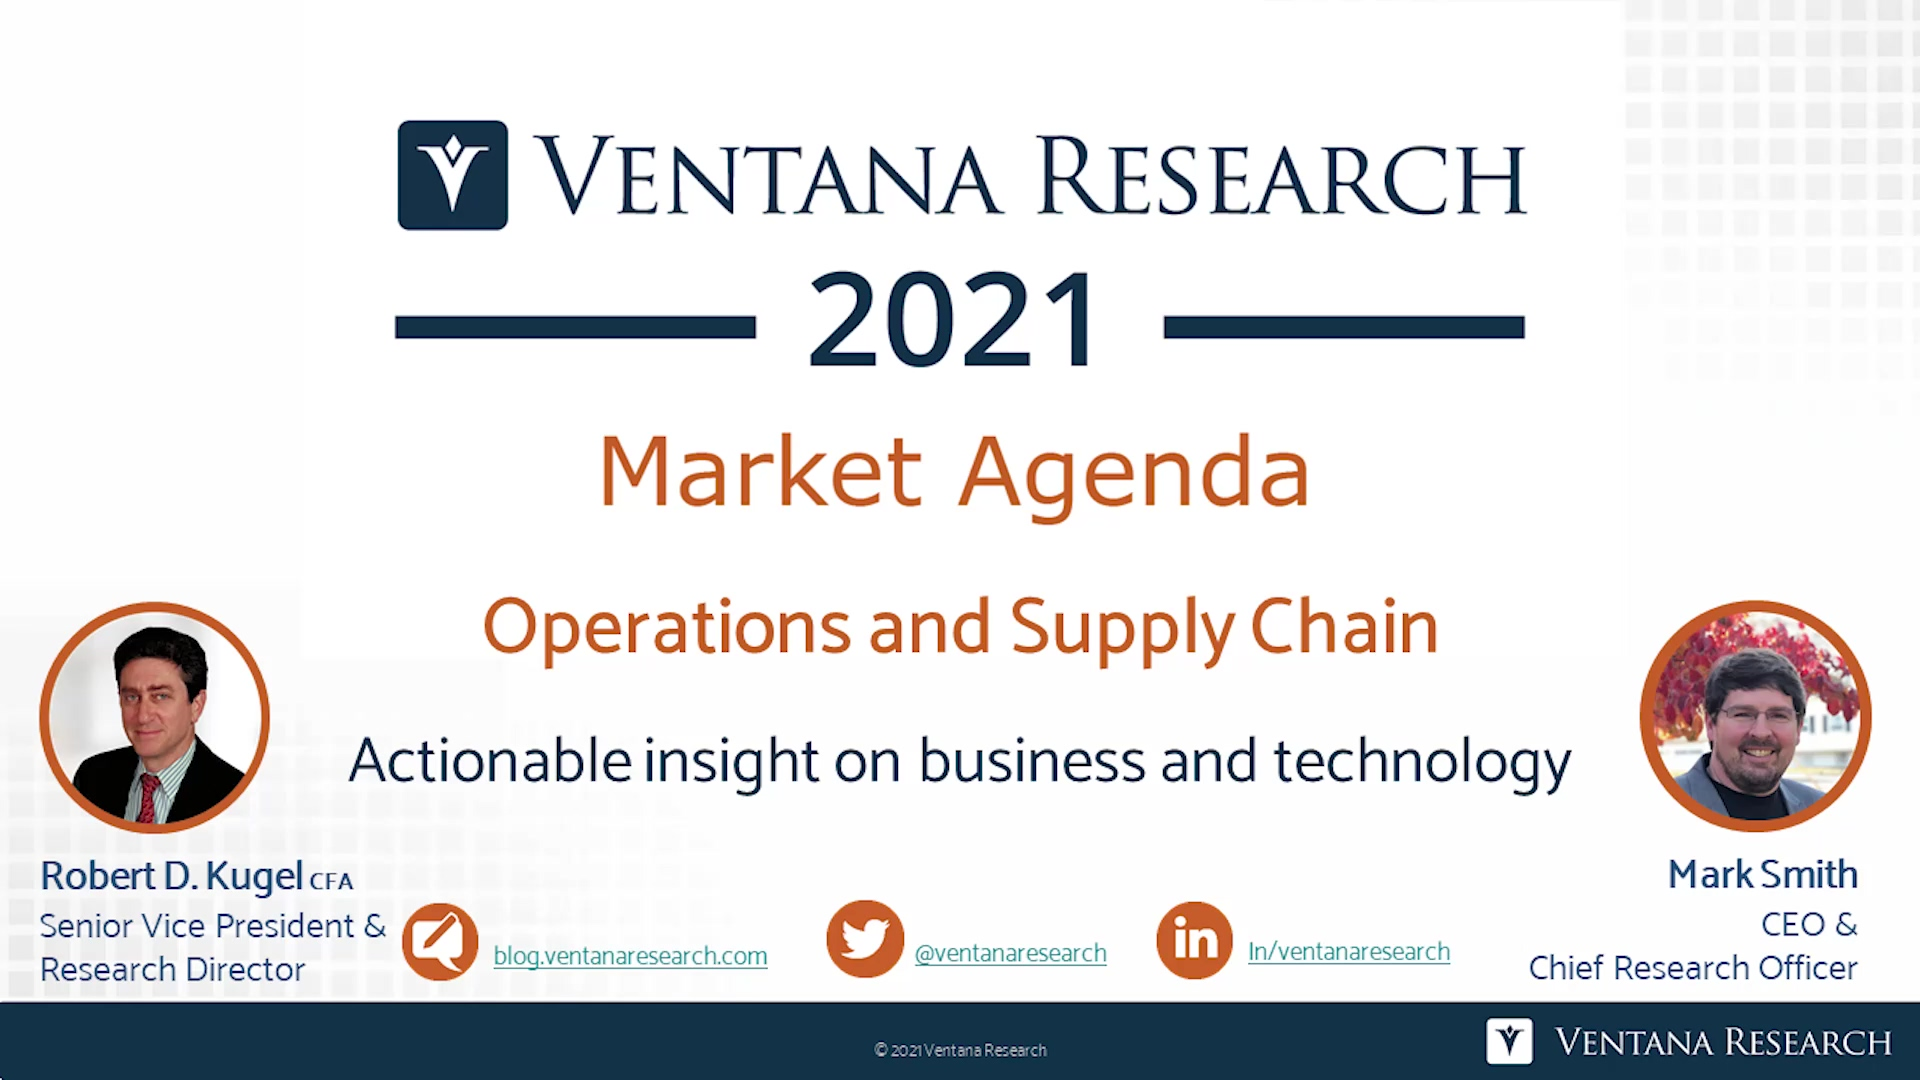 Ventana Research 2021 Market Agenda for Operations and Supply Chain